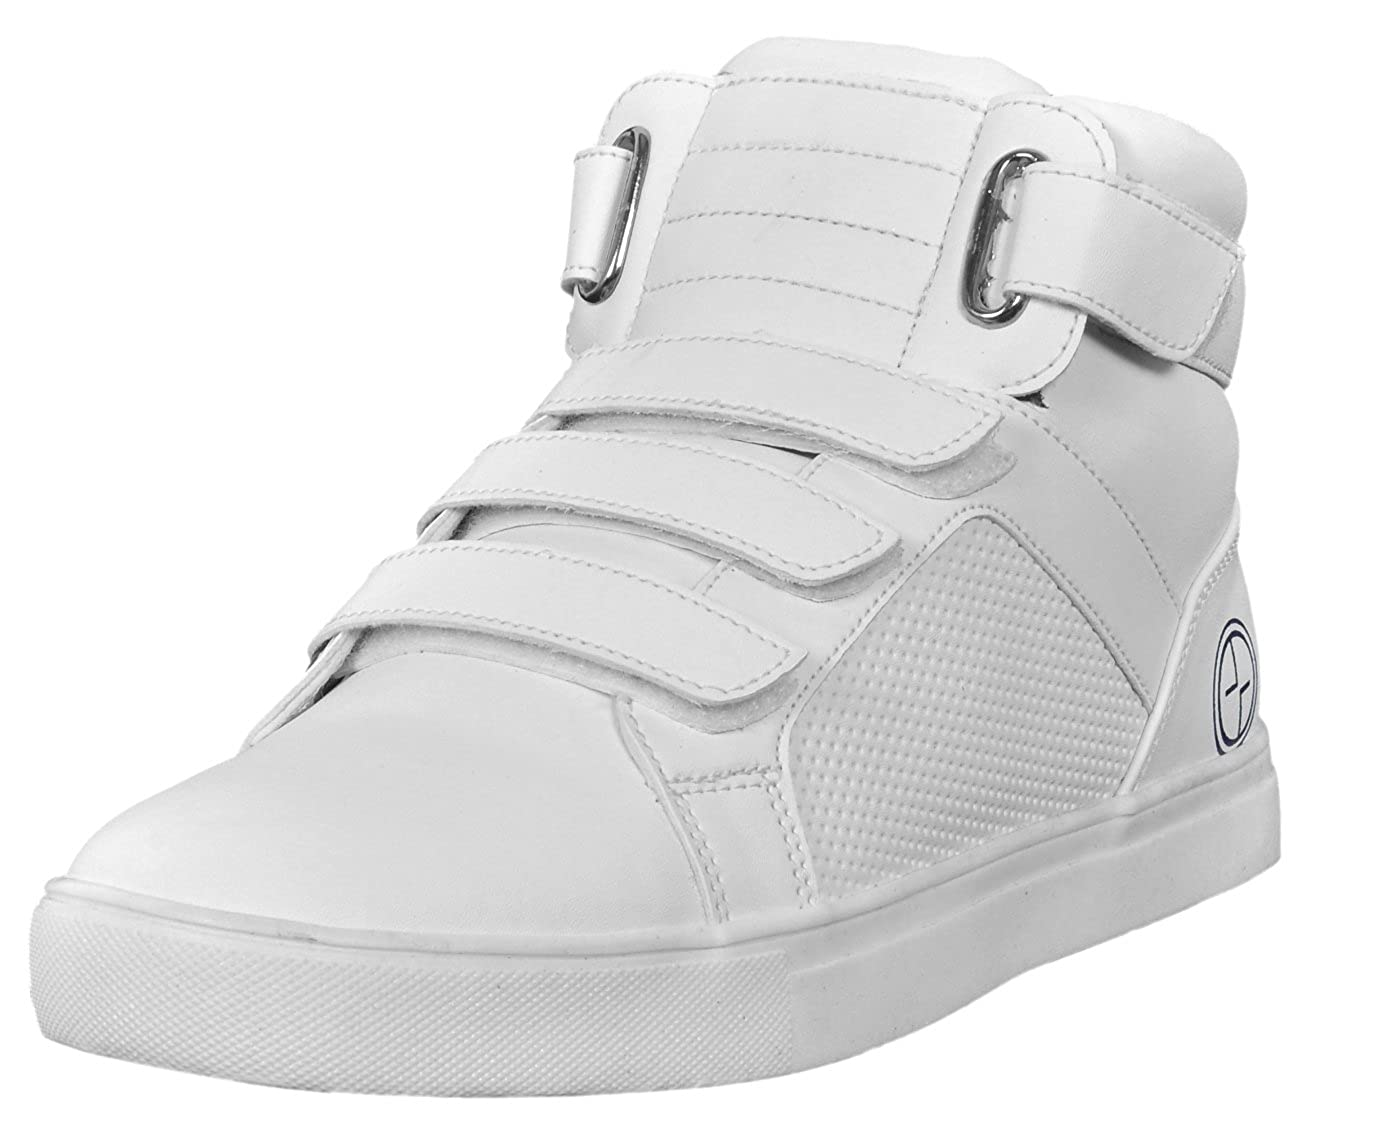 Buy West Code Men's Synthetic Leather